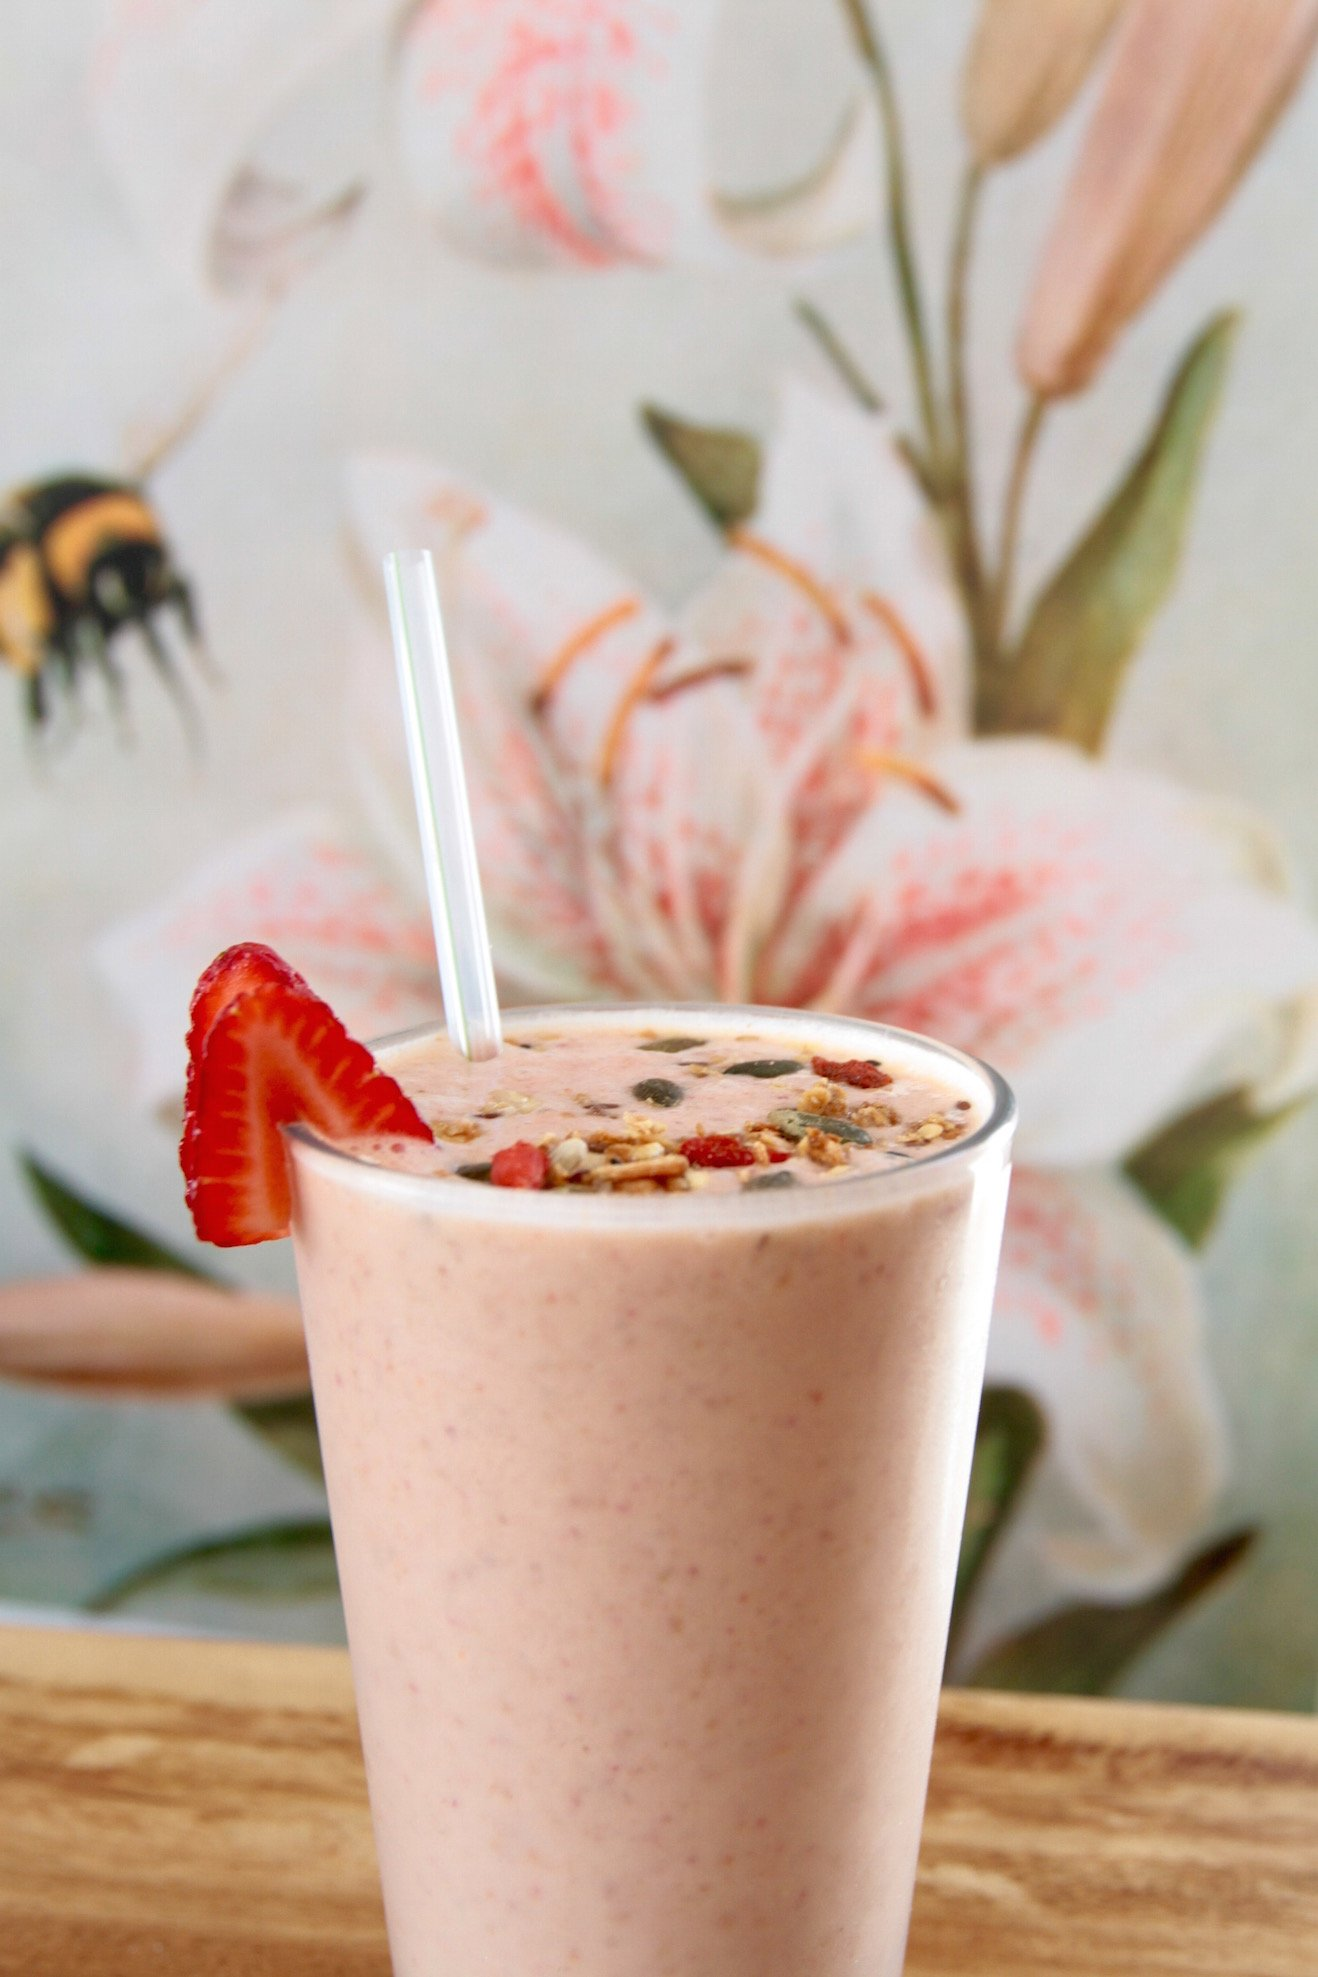 Ibiza delight by Wild beets by Tanja Ting-Pure Goodness